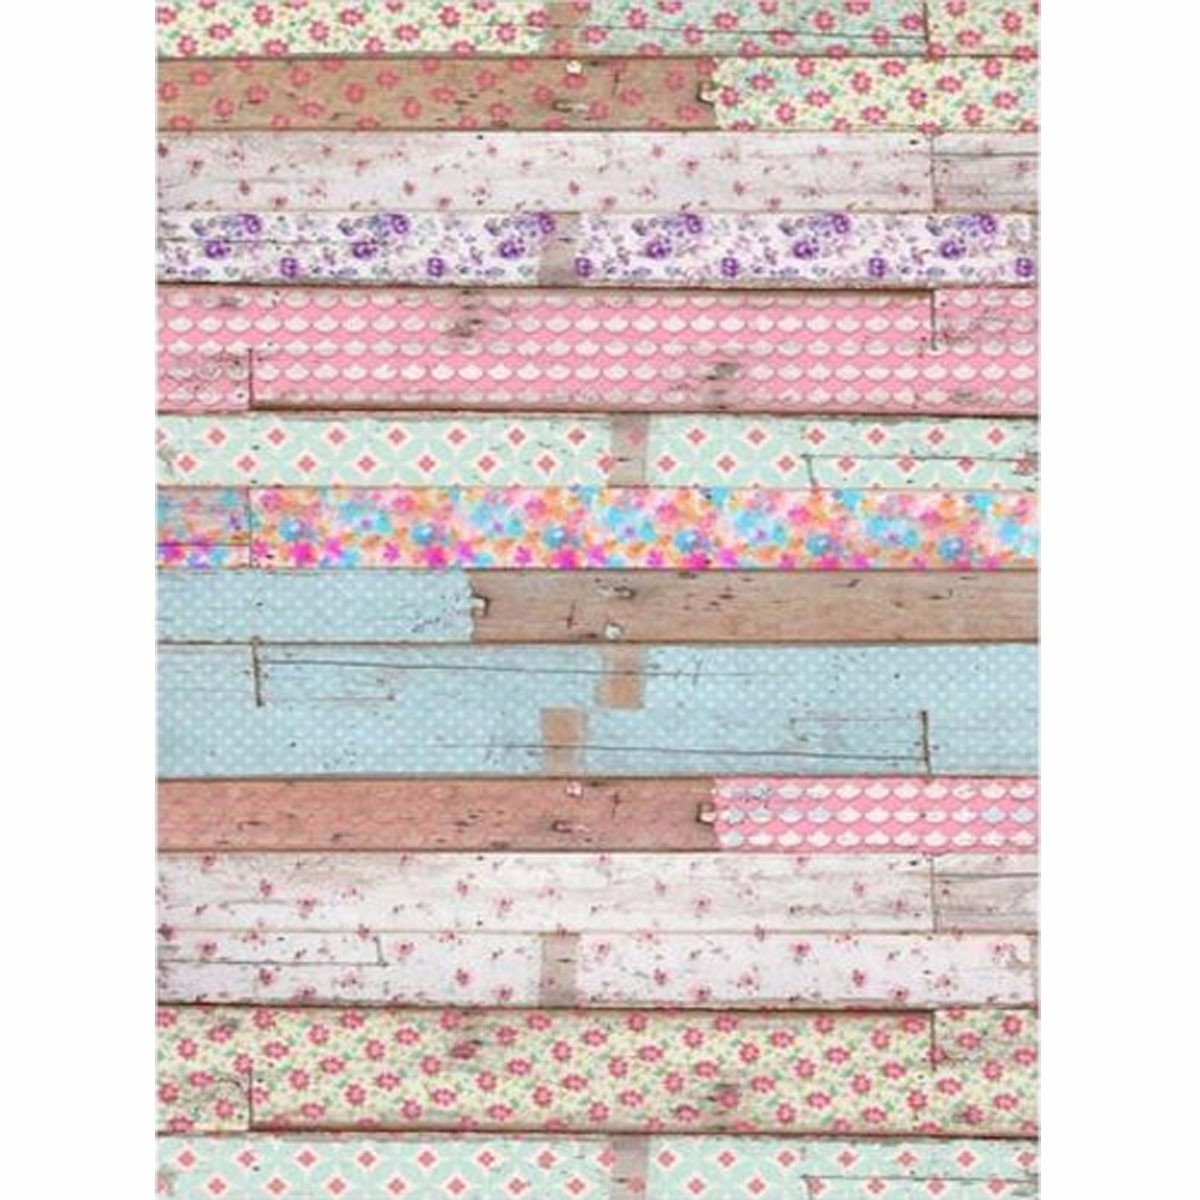 5x7FT Vintage Colored Wooden Wall Vinyl Photography Background Backdrop Prop